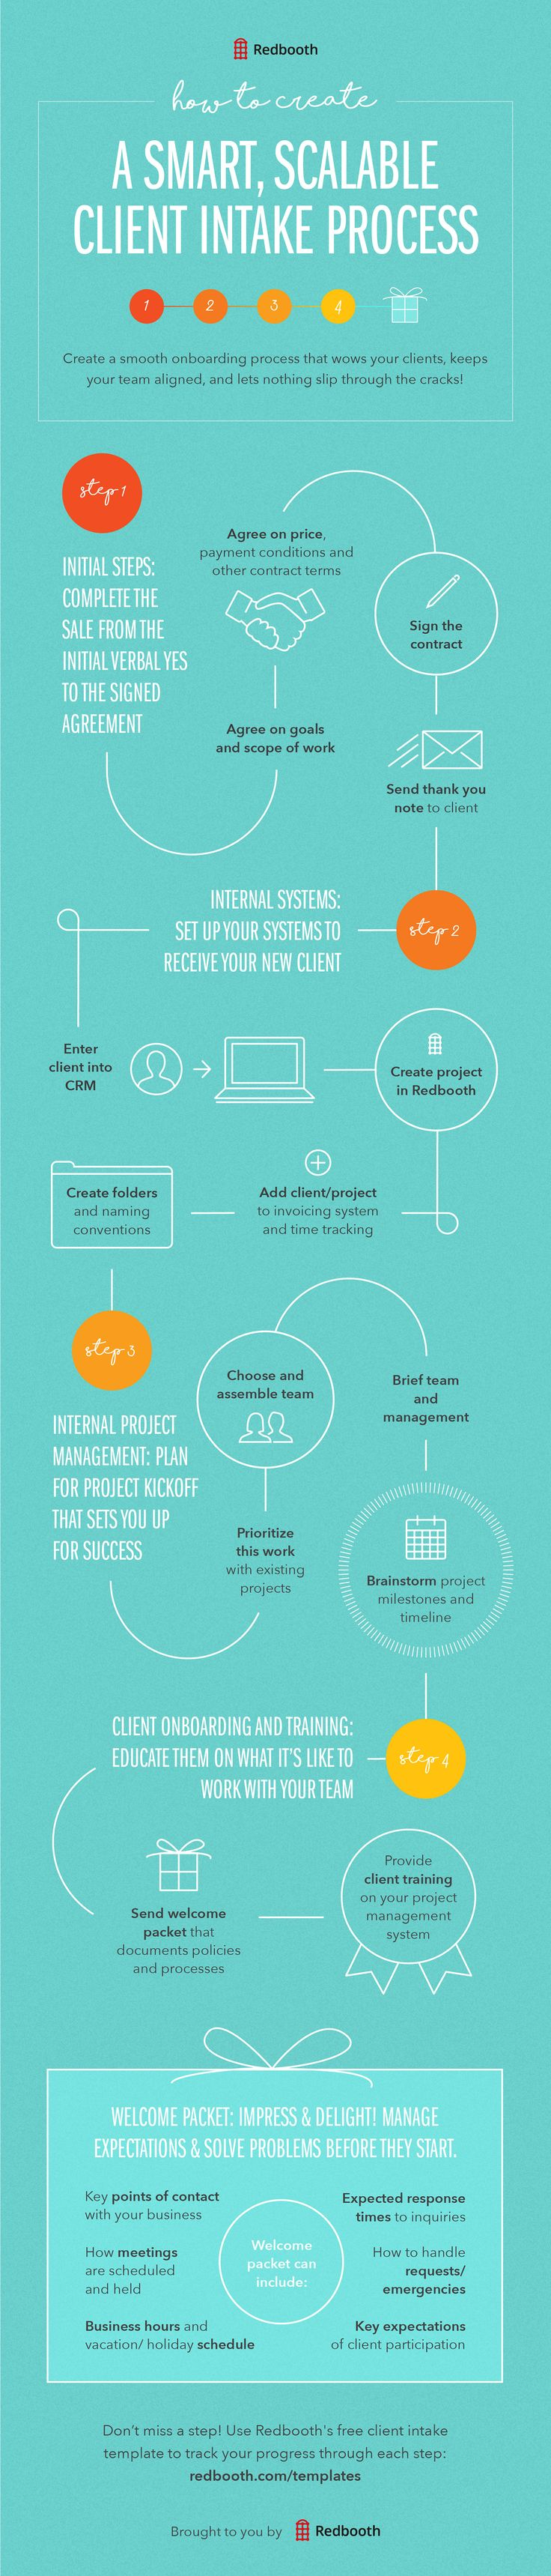 216 best Infographics. images on Pinterest | Infographic, Info ...